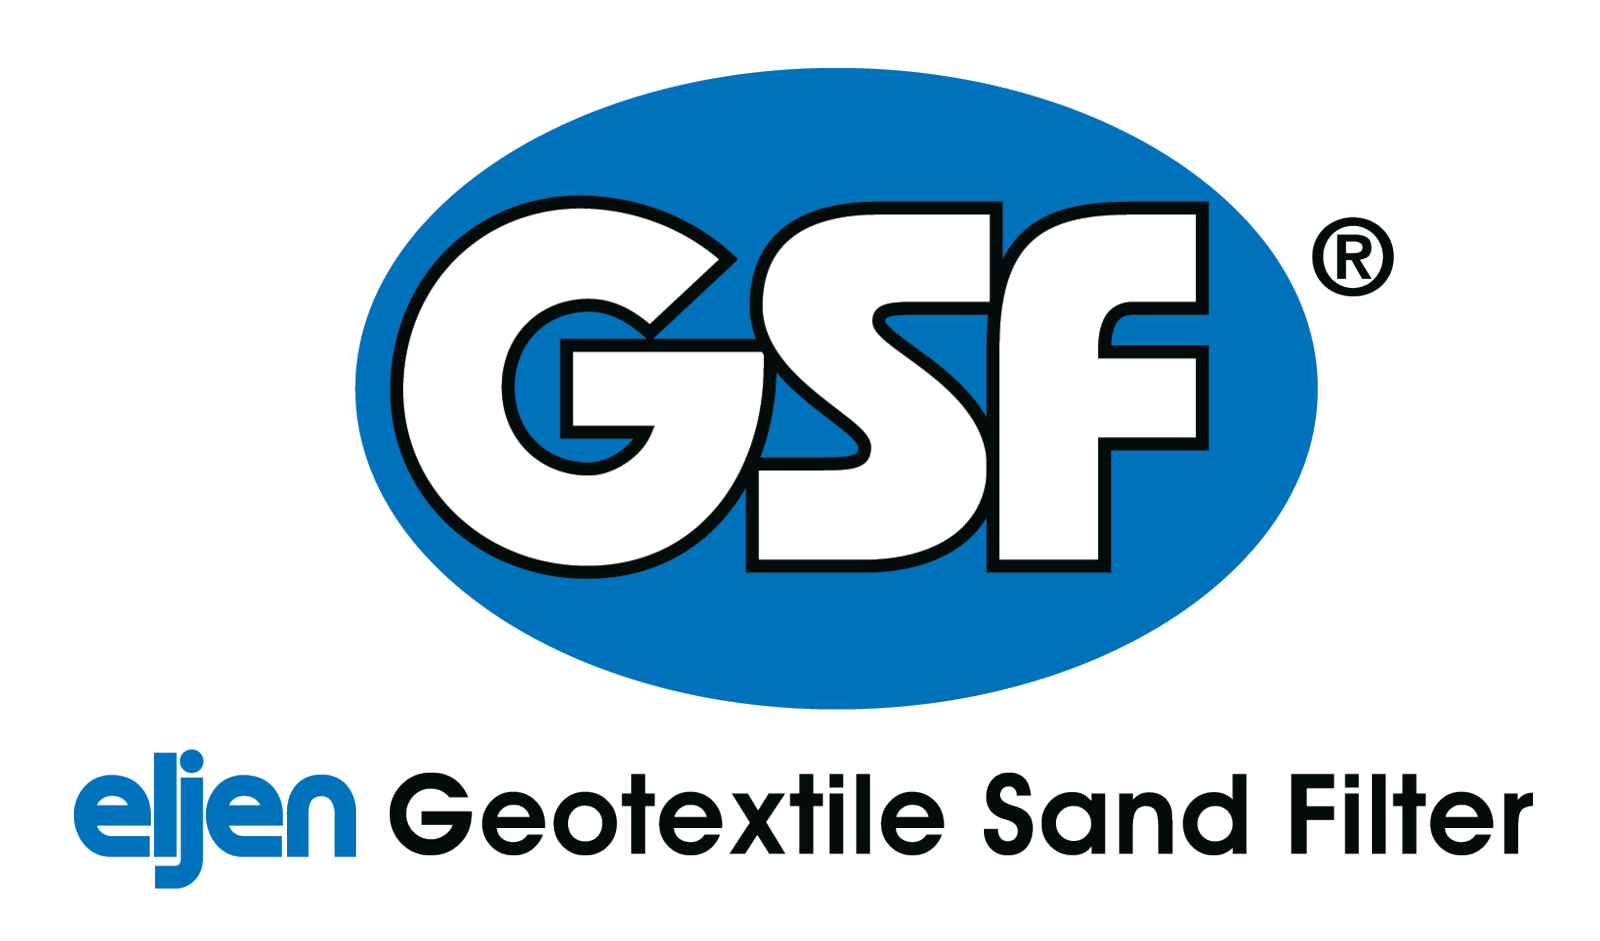 GSF with Tagline